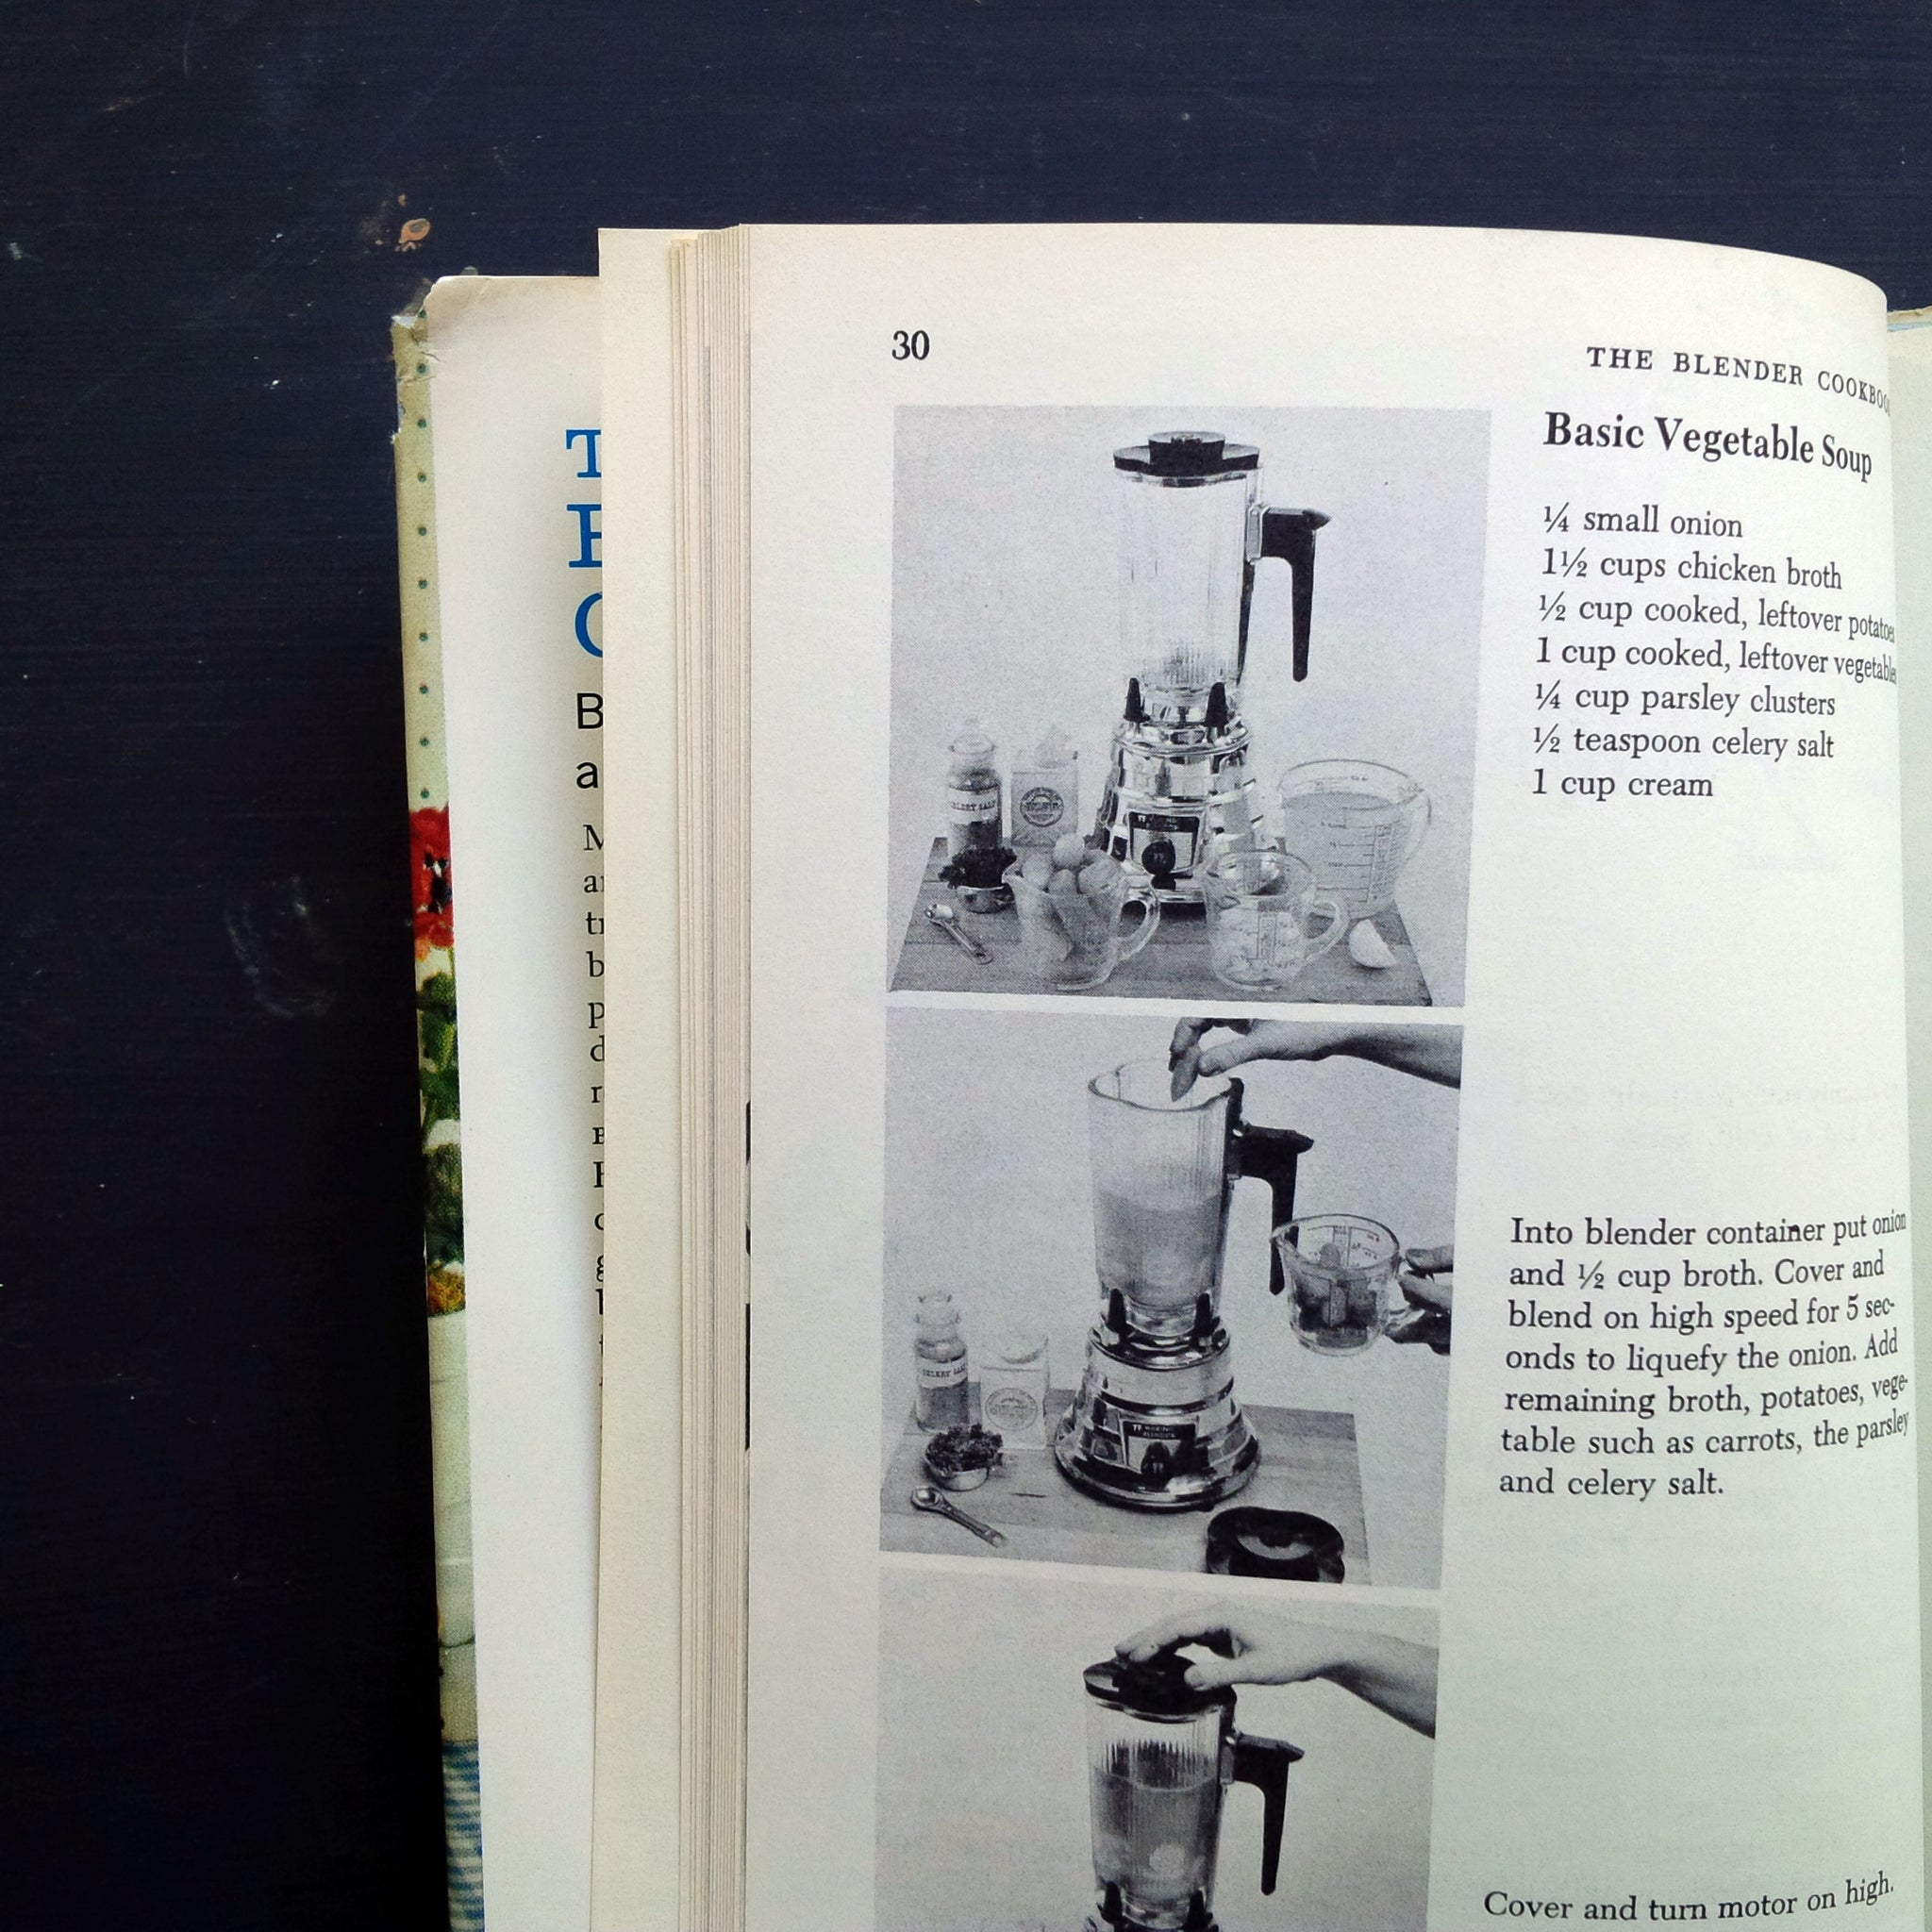 The Blender Cookbook - Ann Seranne, Eileen Gaden - 1960s Blender Recipes